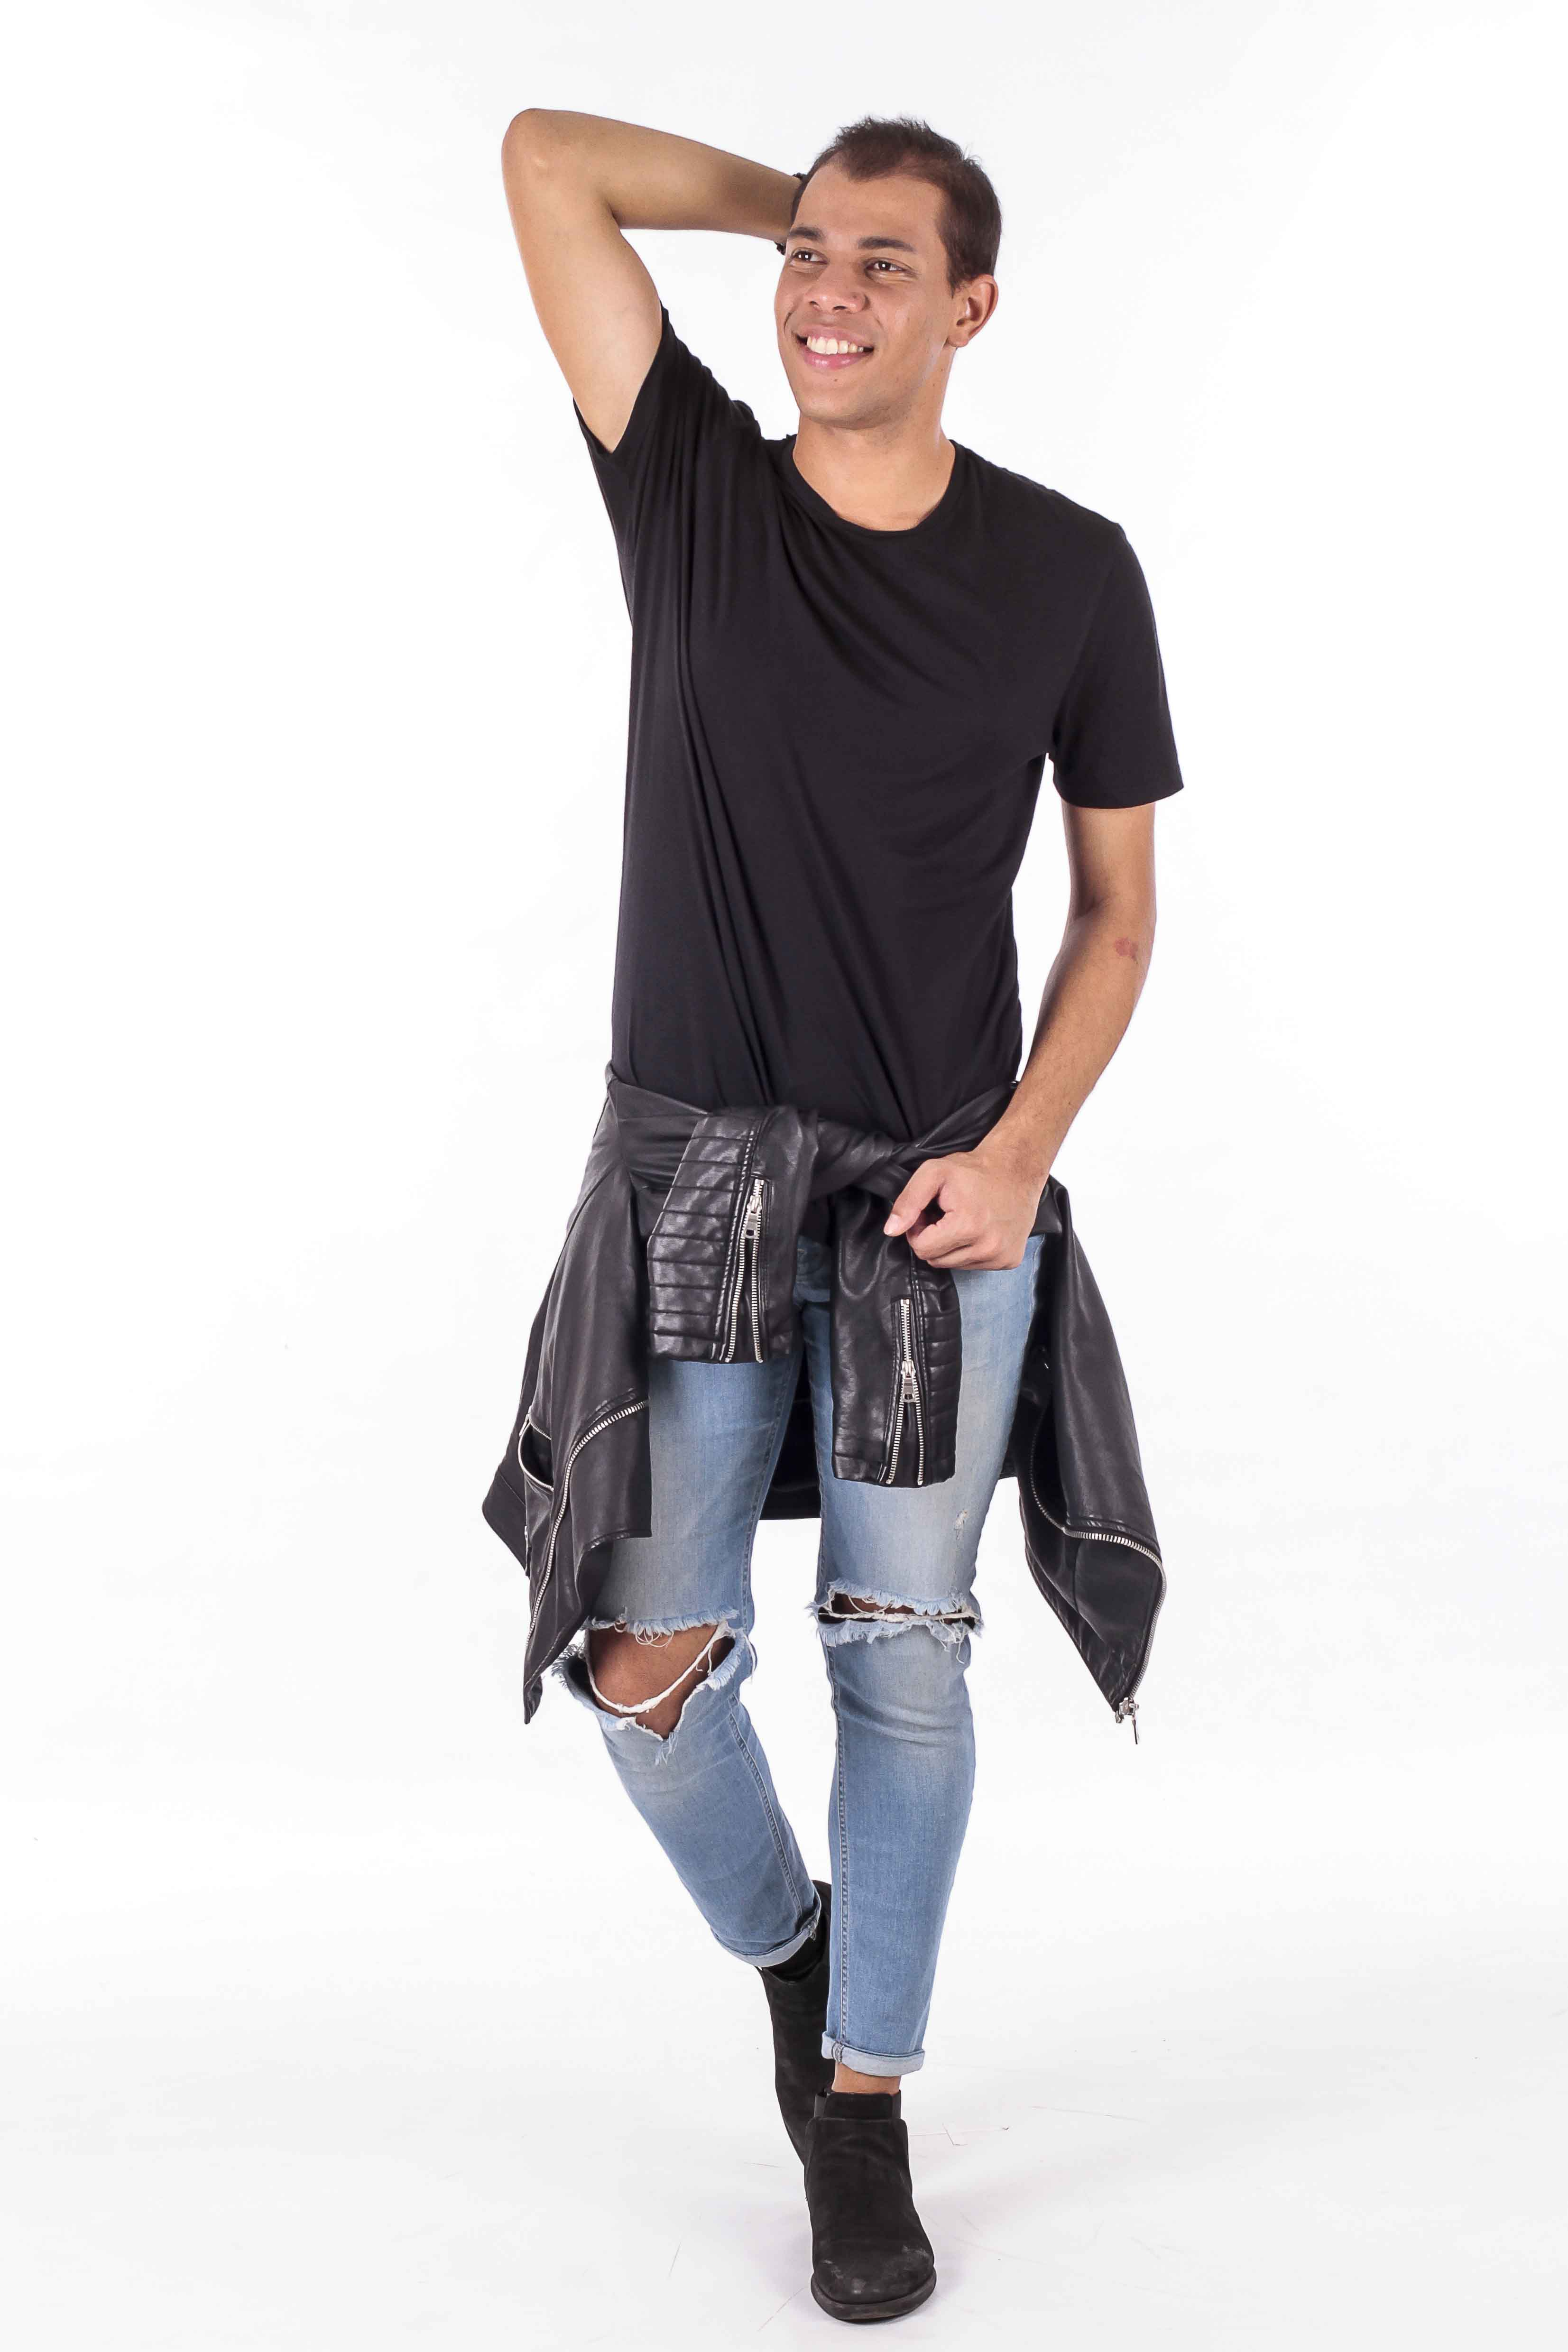 Luciano models-21